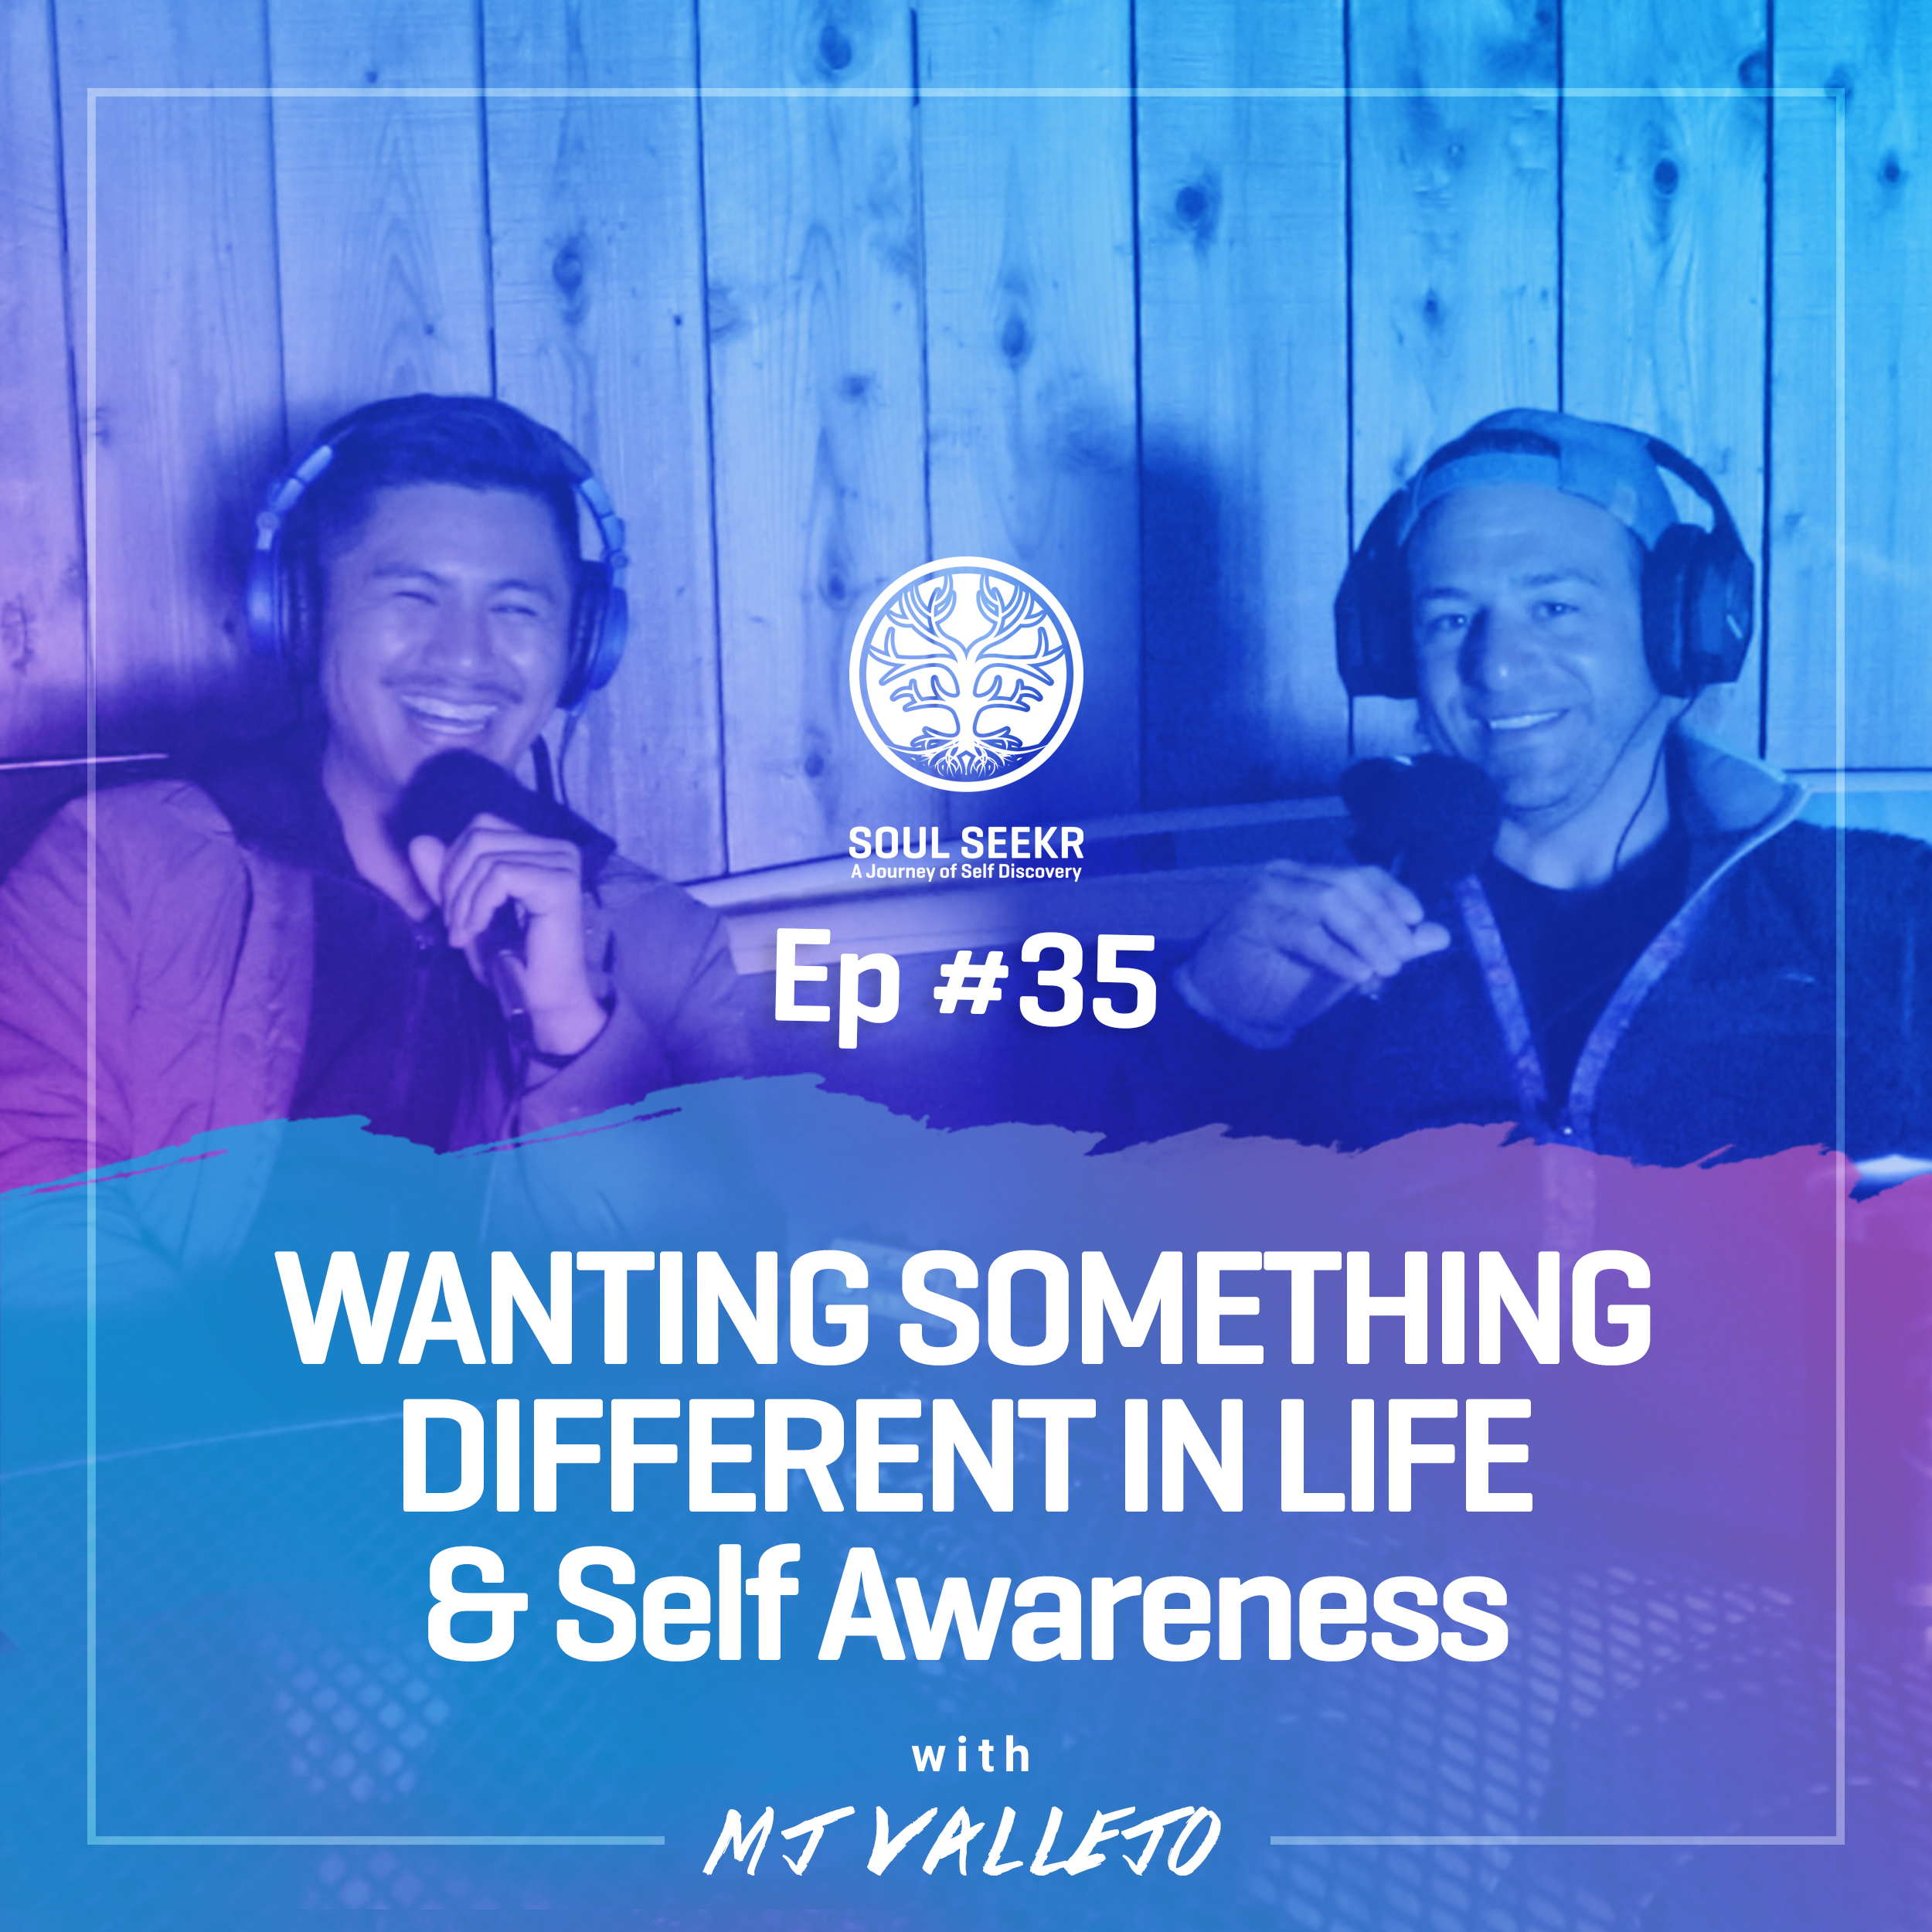 #35: Wanting Something Different In Life & Self Awareness with MJ Vallejo